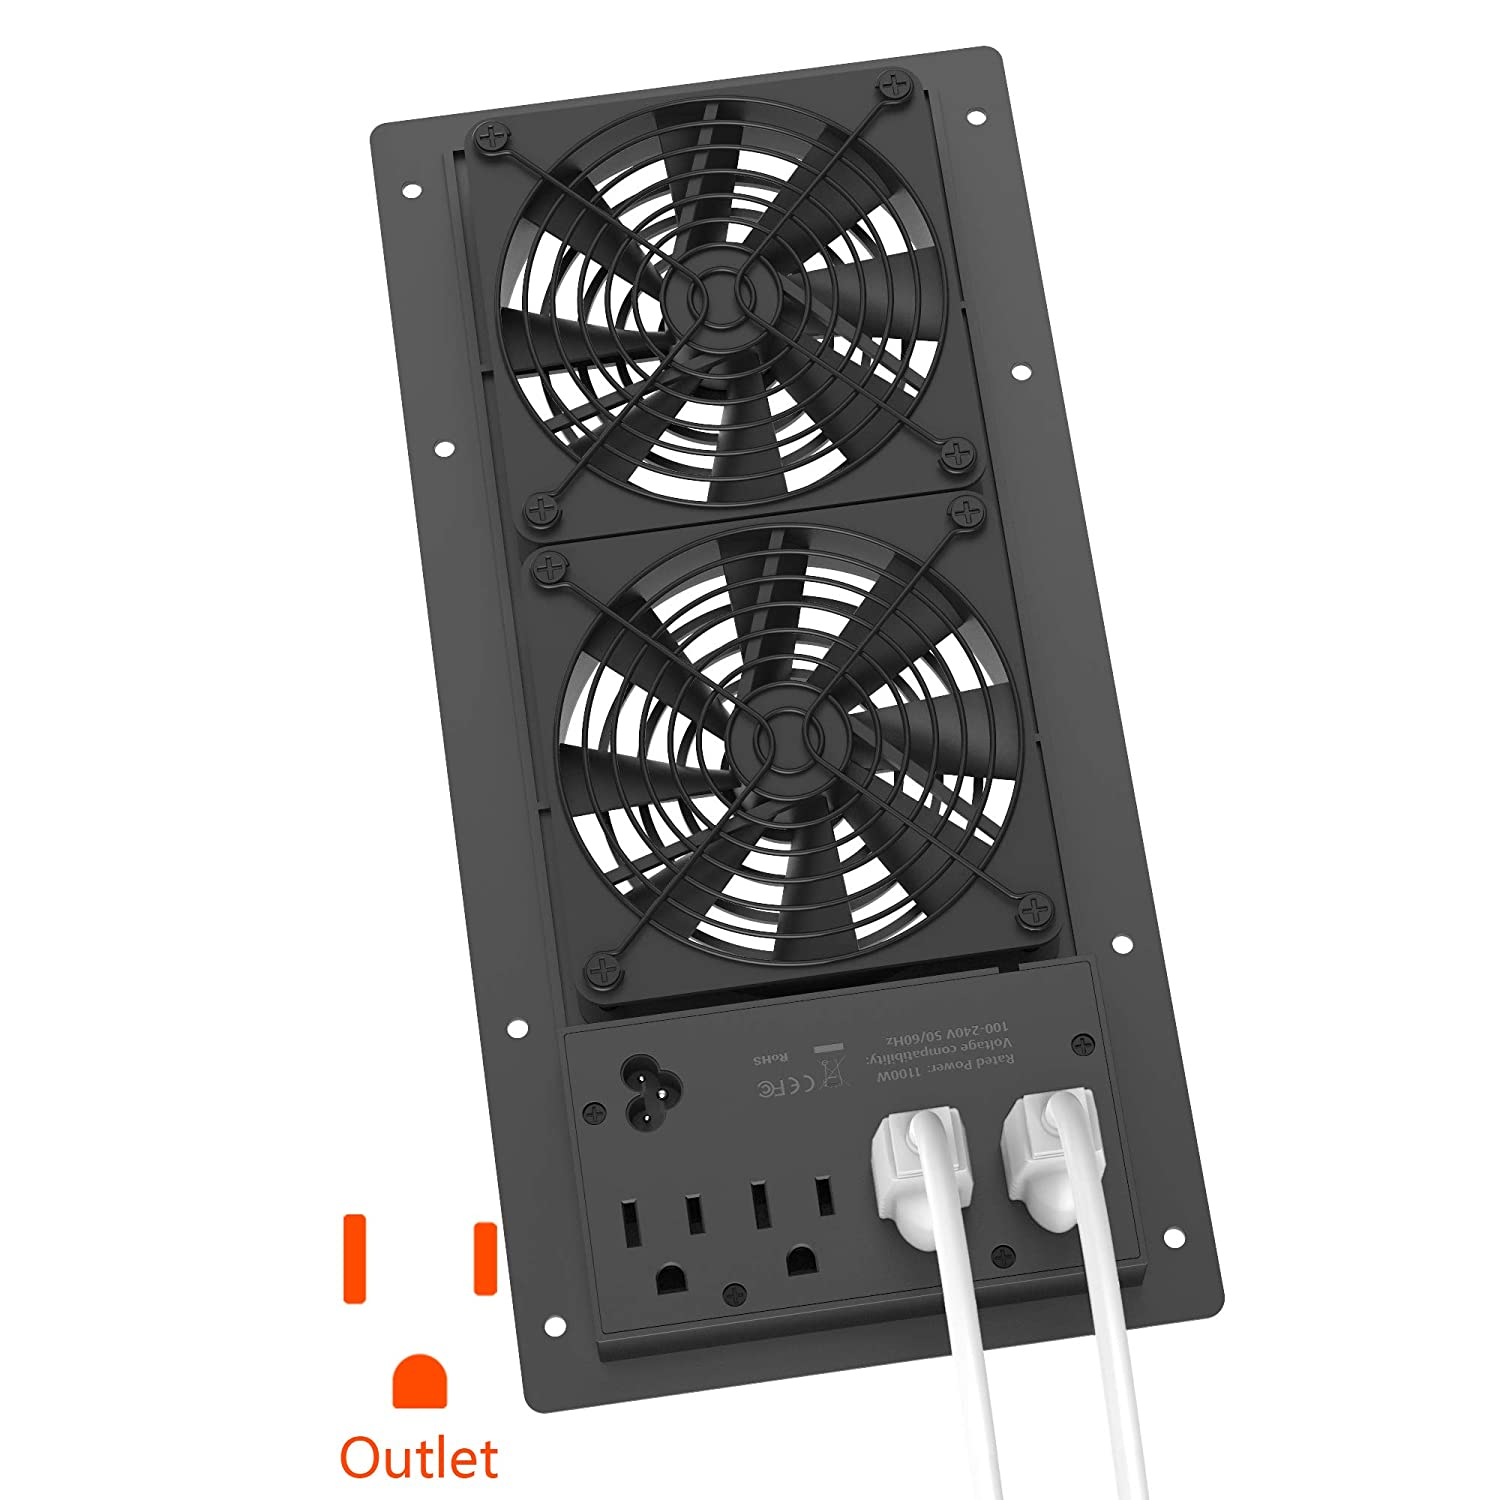 Hiree Quiet Cooling AC Fan Dual 4 inch Ventilation Axial Muffin Fan with 4 AC Power Outlet for Home Theater Receiver DVR Amps AV Computer Cabinet Closet Electronic Equipment DIY Vent Exhaust (Black)